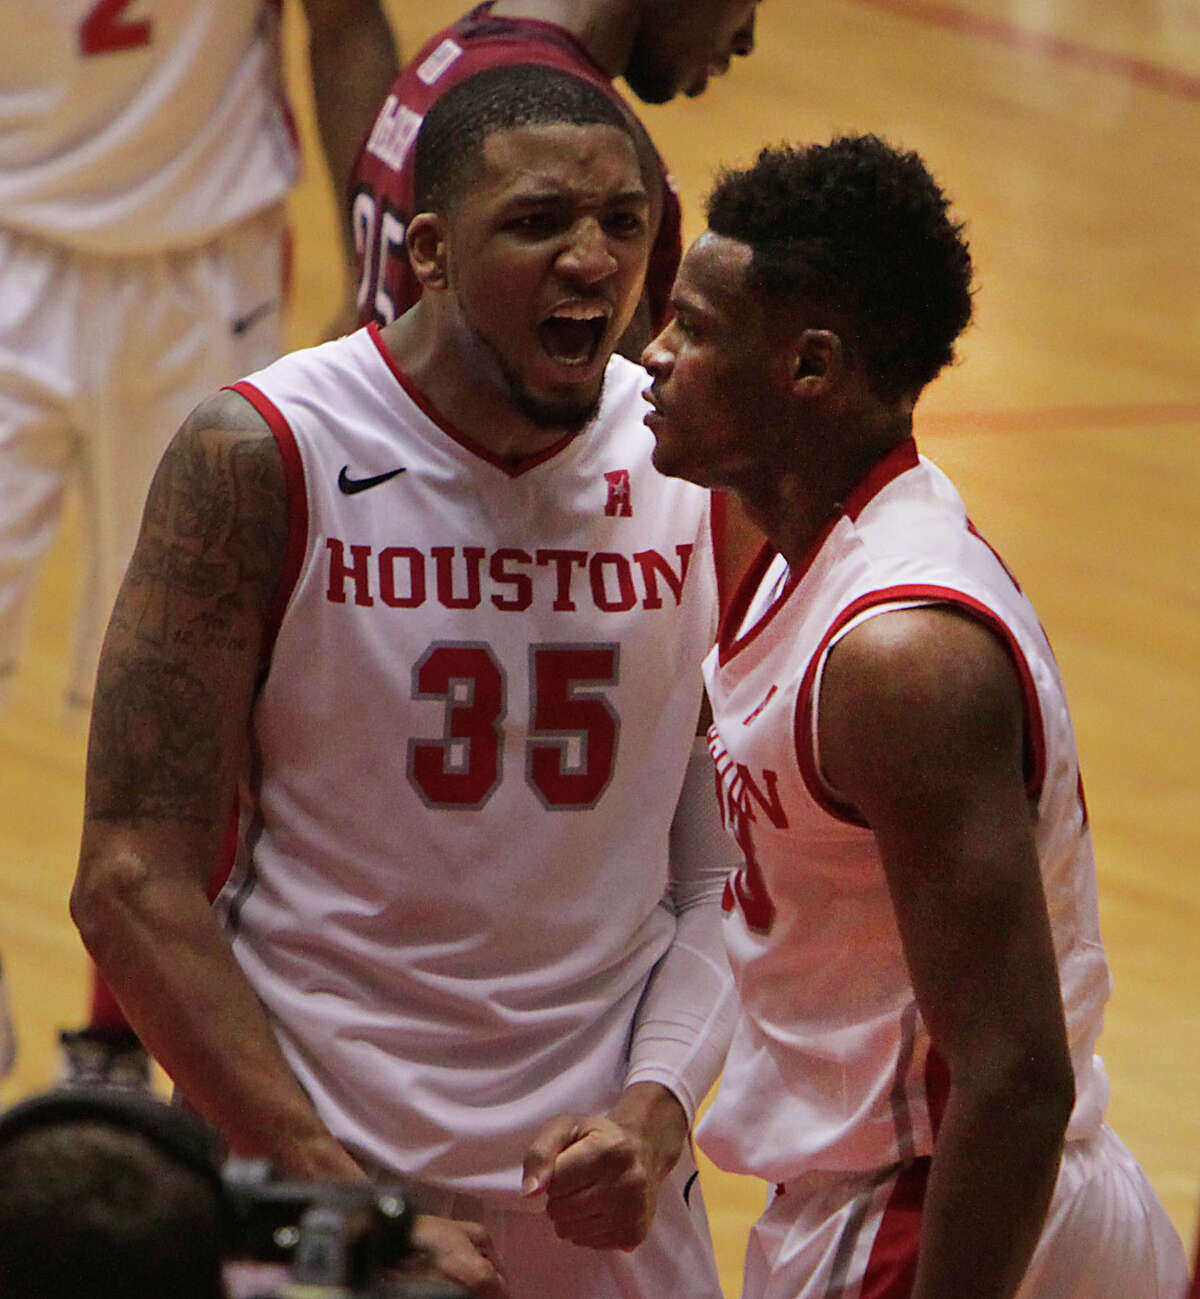 University of Houston's TaShawn Thomas left, reacts after teammate Danuel House right, slam dunked the ball against Temple during the second half of men's college basketball game action at Hofheinz Pavilion Sunday, Feb. 9, 2014, in Houston.